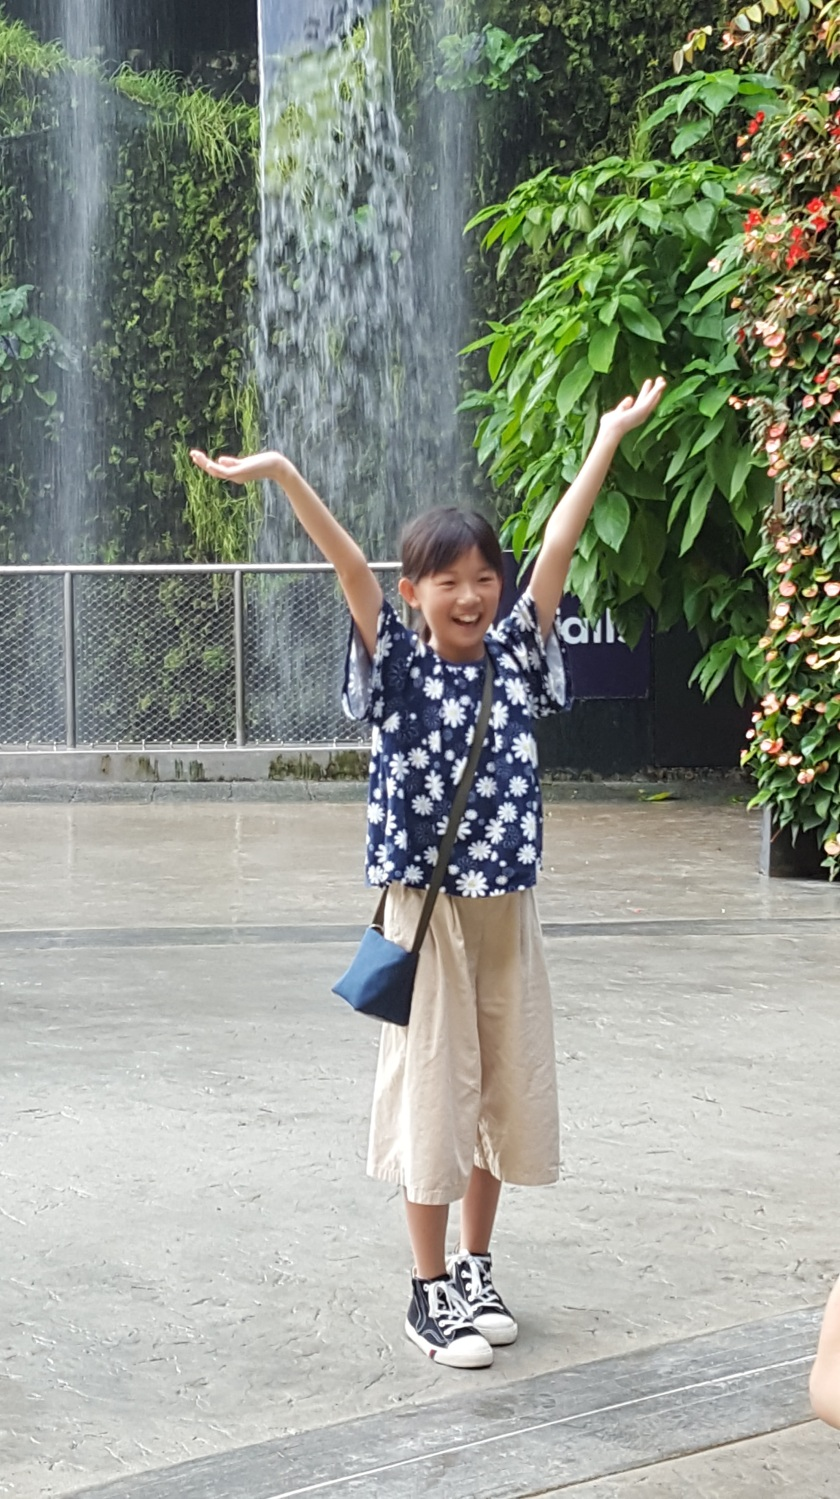 Hands up! Girl at Singapore Botanical Gardens